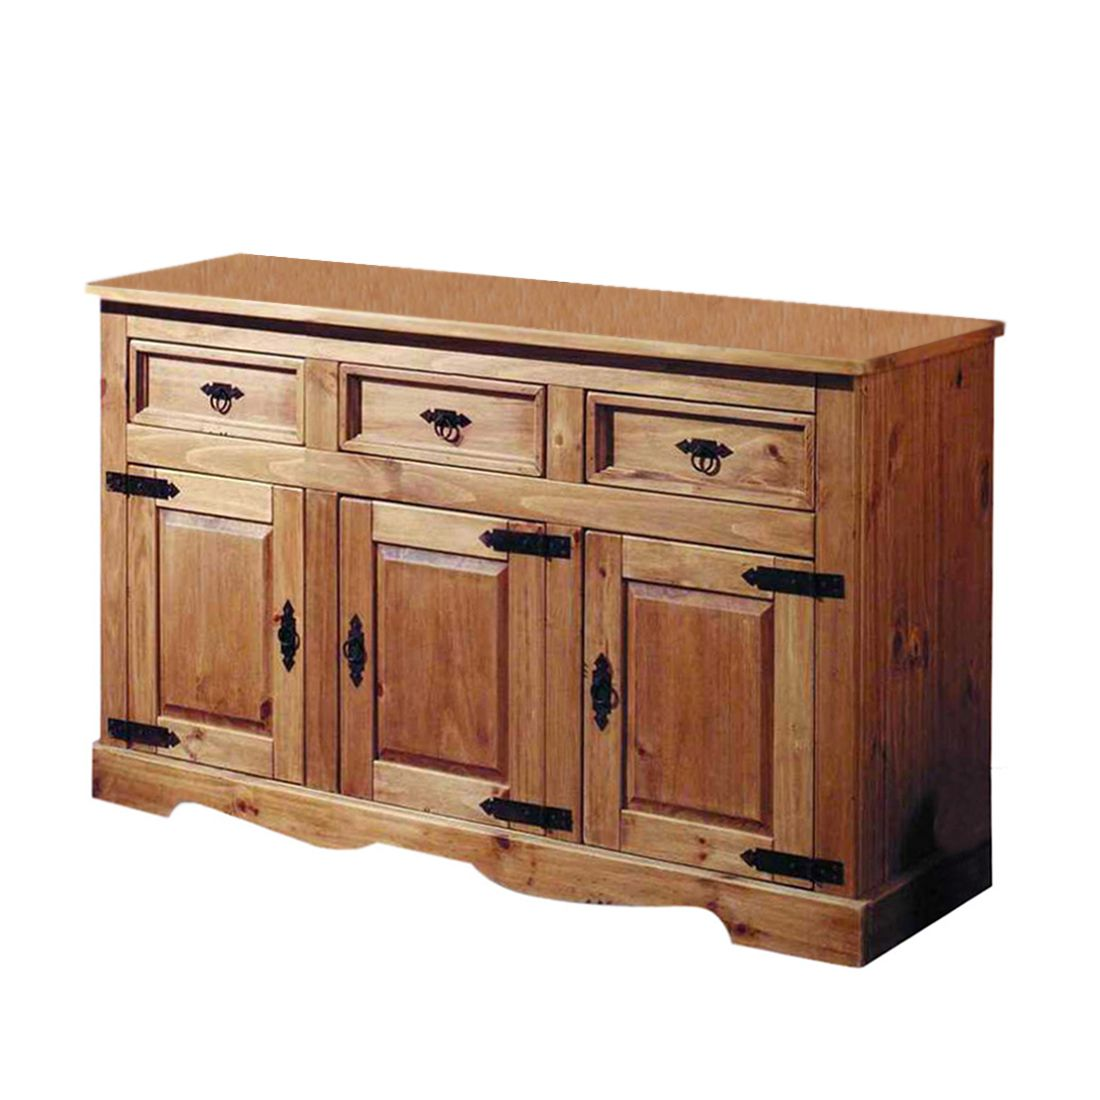 Sideboard Zacateca III